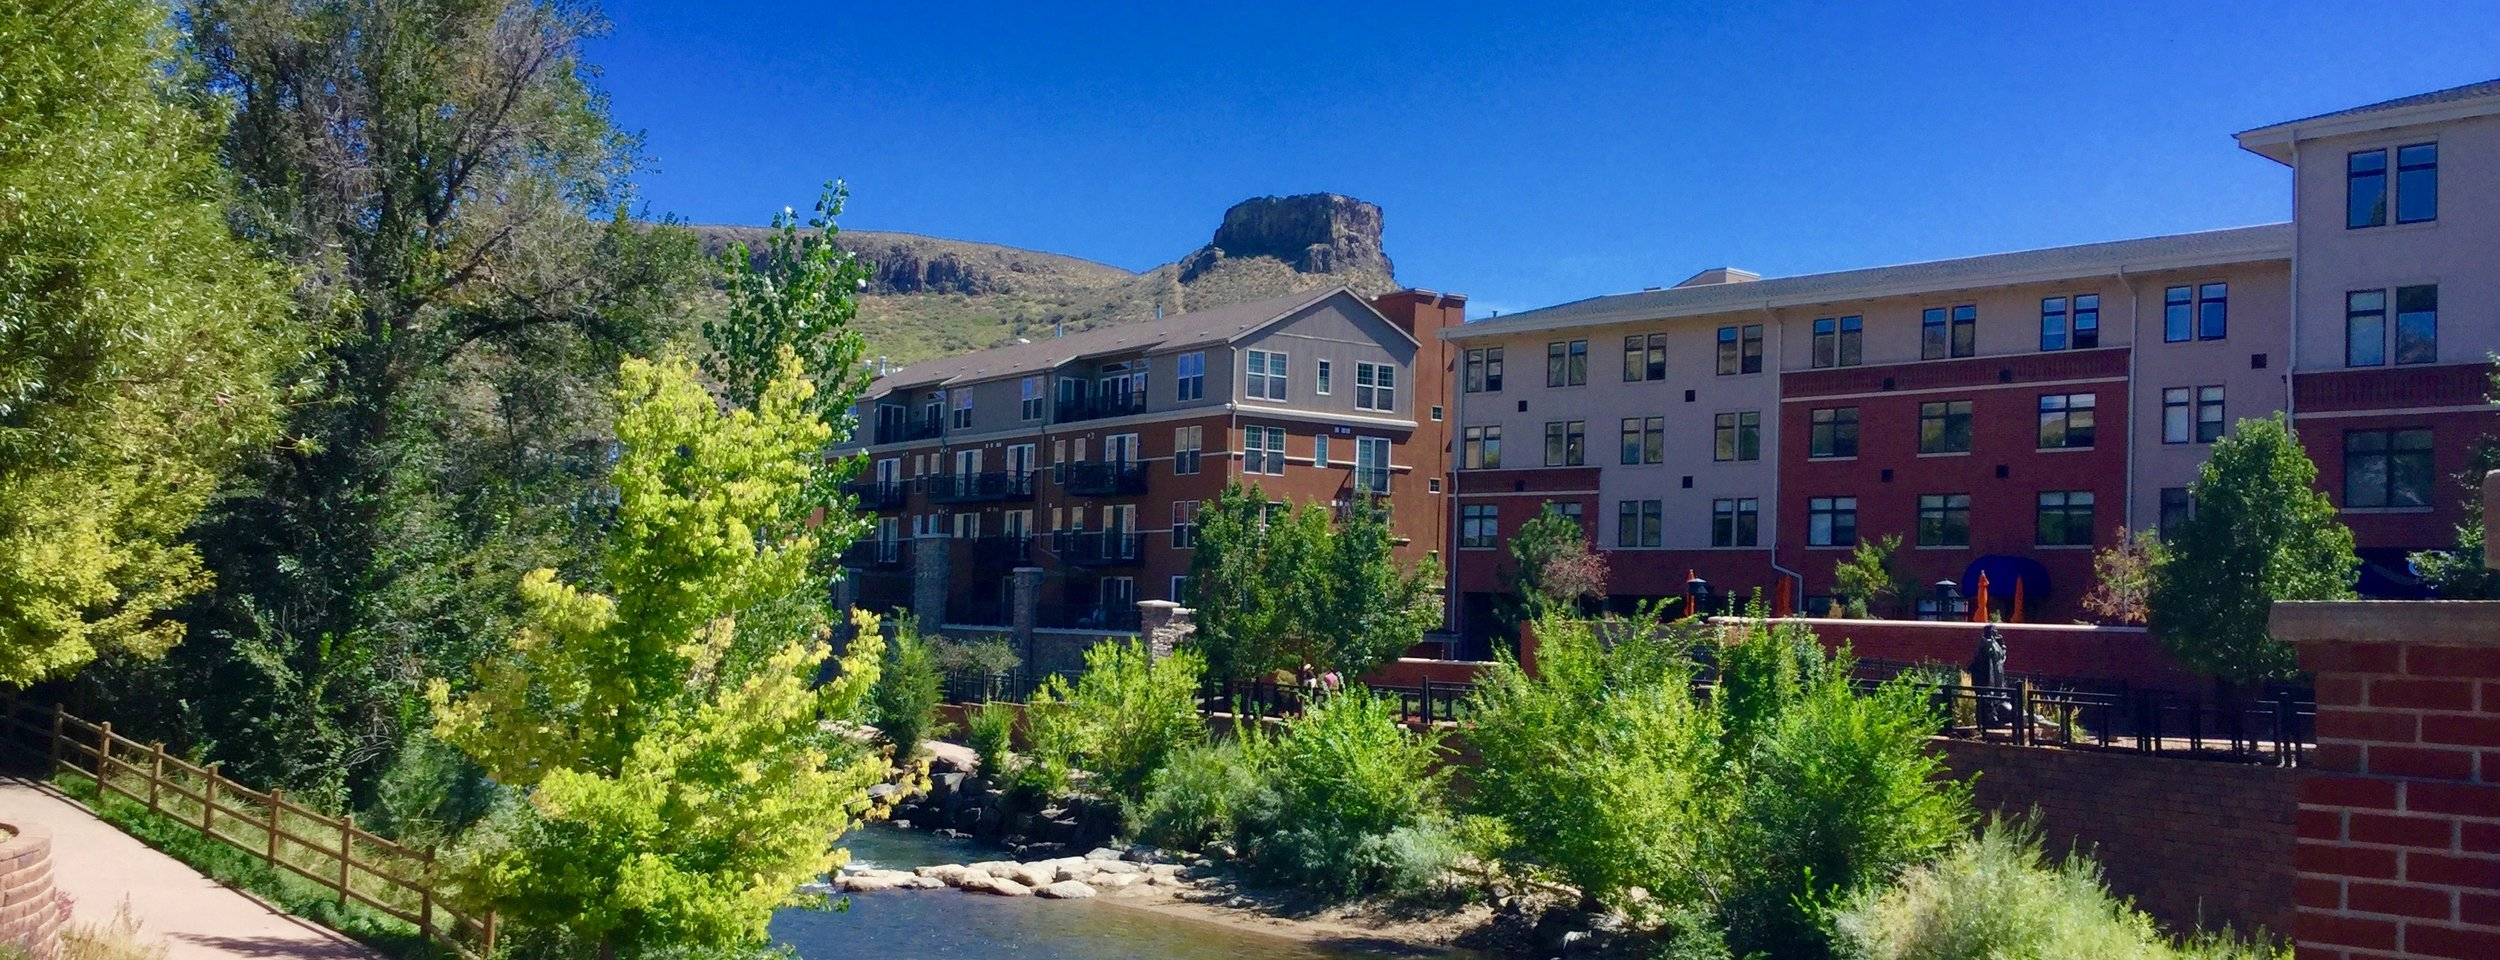 View all Condo Properties that are available for sale in Golden, Colorado